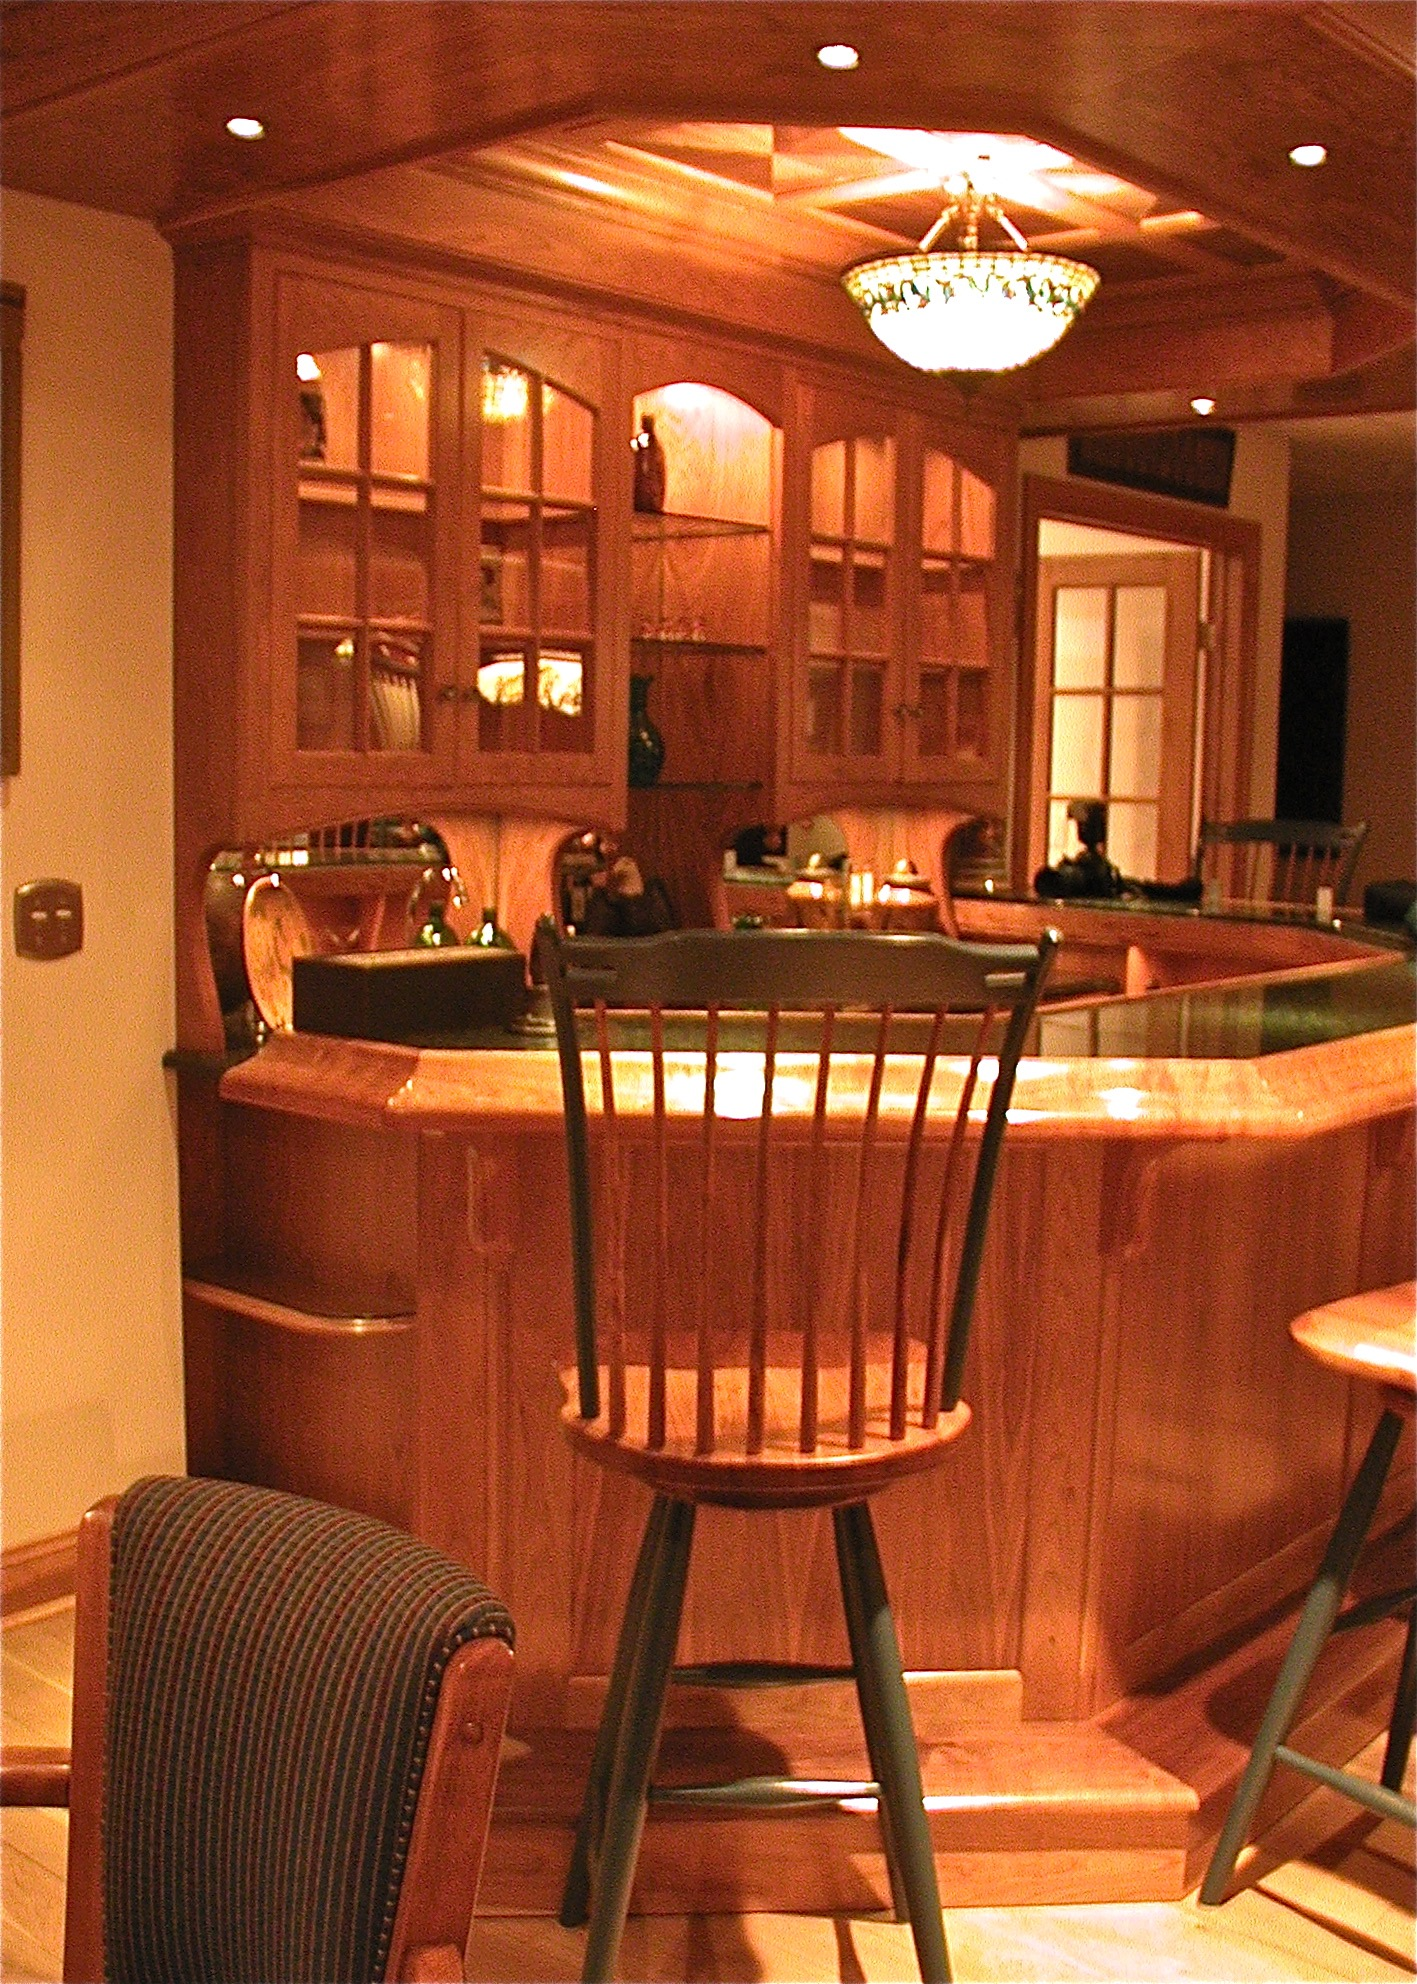 If custom cabinetry is what you seek, we offer custom cabinetry and much more of high quality craftsmanship.